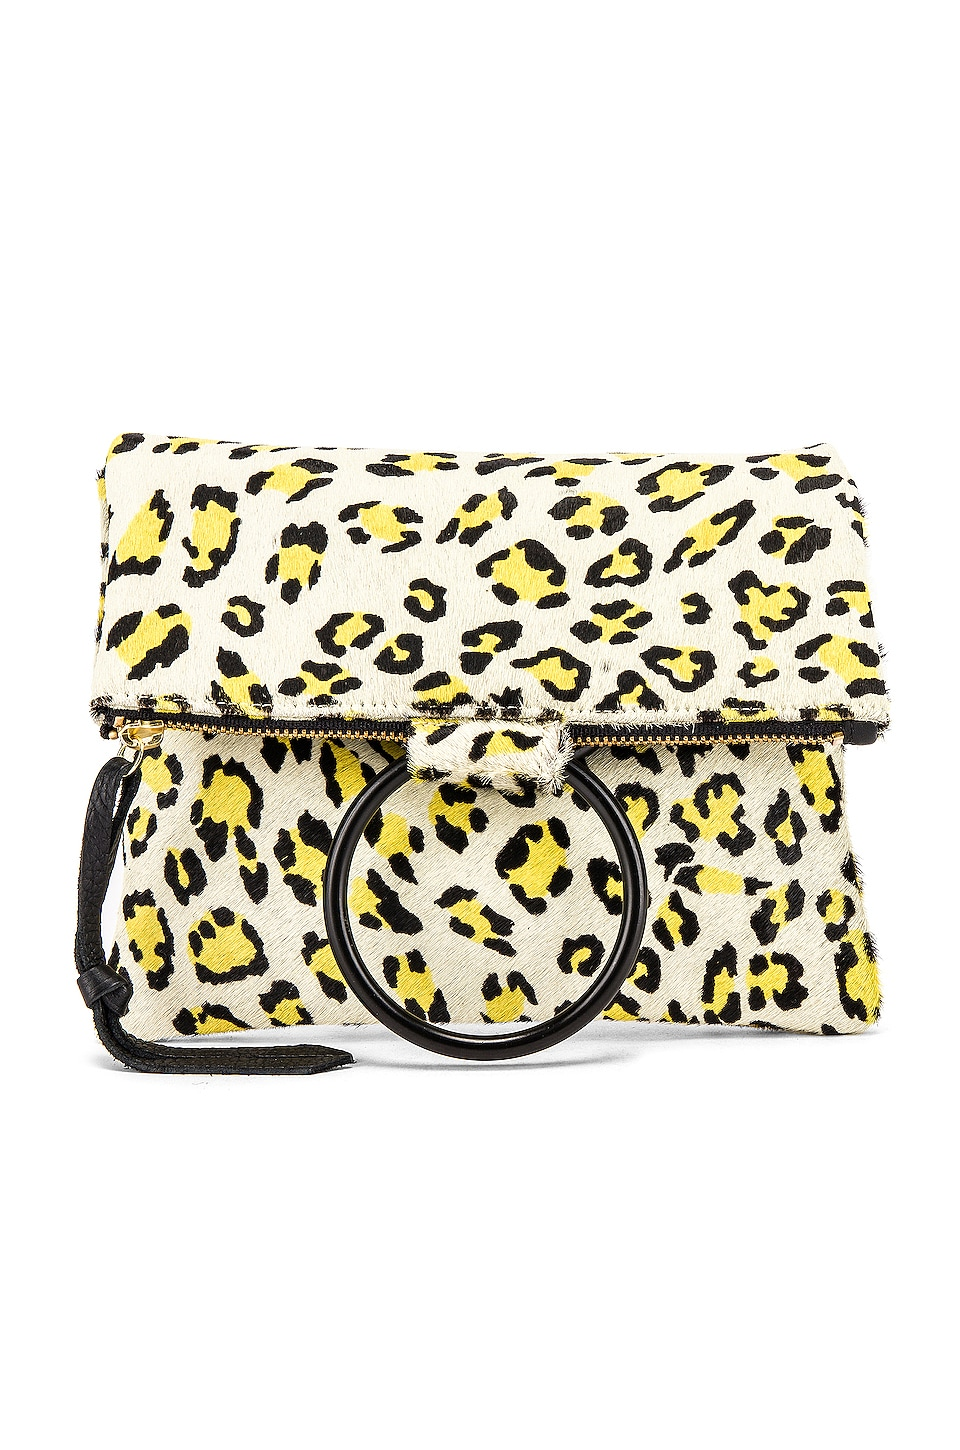 Oliveve Laine Ring Bag in Citron Leopard